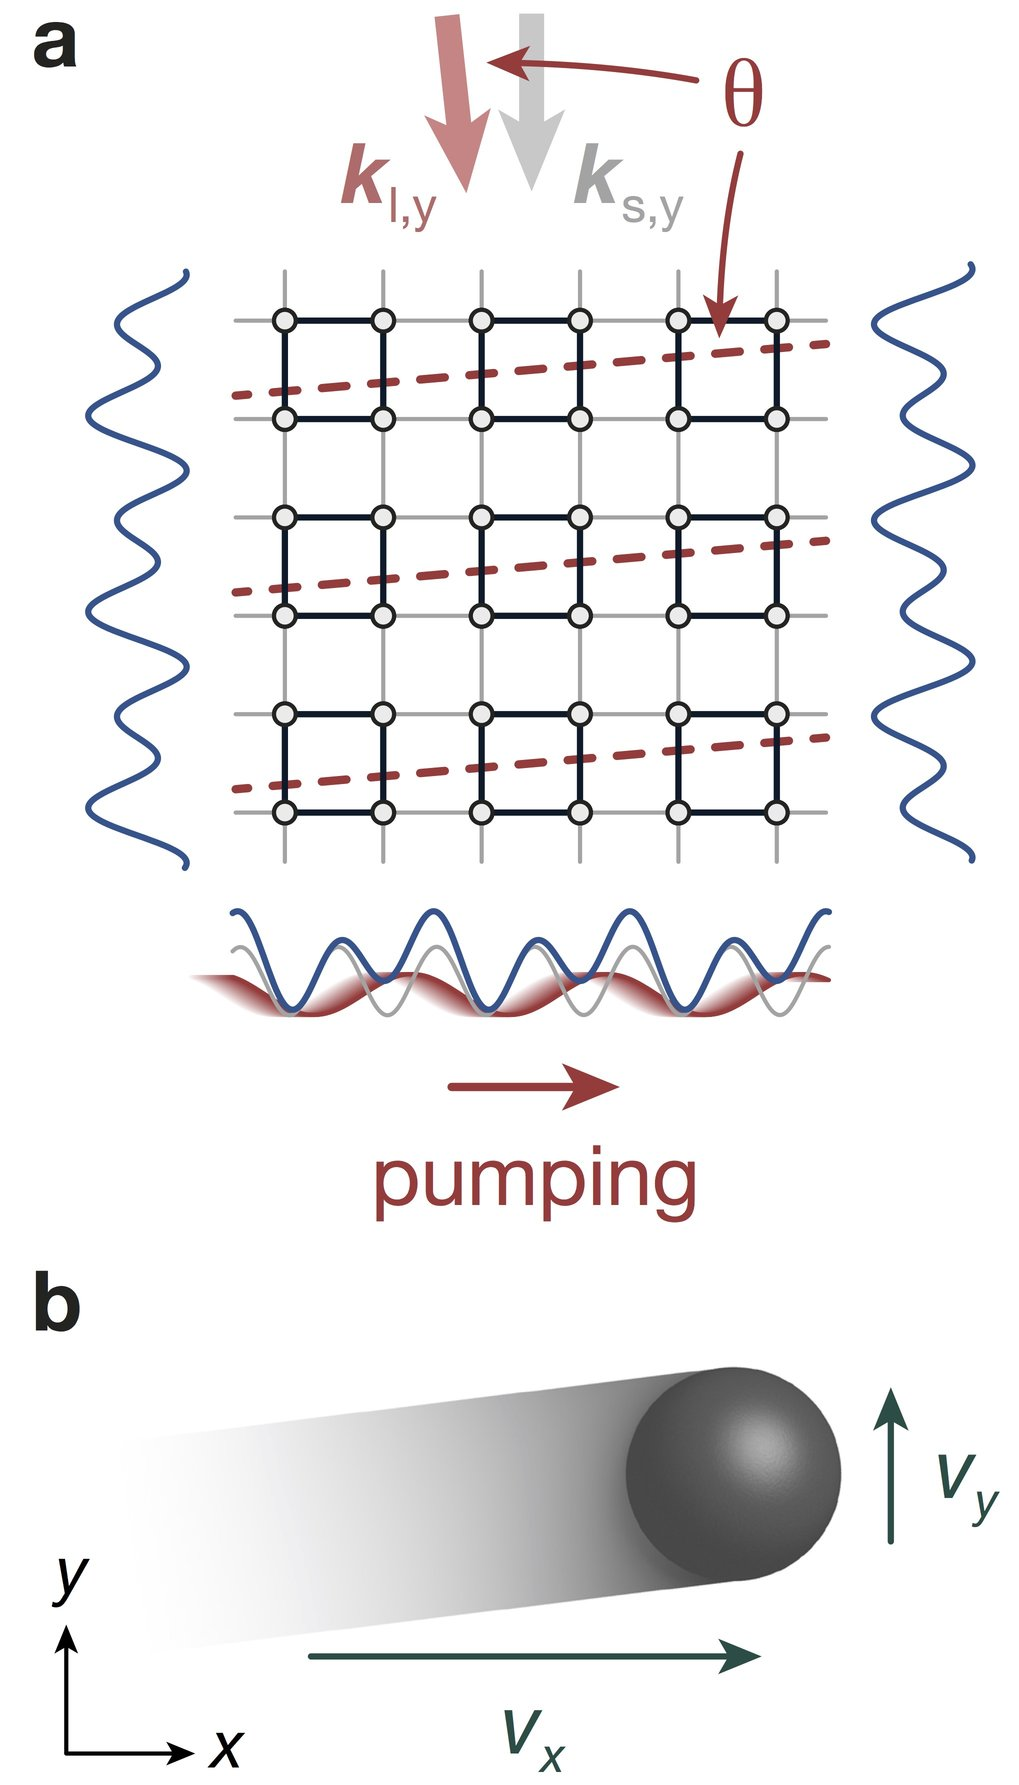 "<em>2D topological charge pump in an optical superlattice. (a) A 2D superlattice potential is created by interfering laser beams, forming an egg-carton-like ""light crystal"" in which the atoms are placed. (b) Modulating the potential along the horizontal x-axis periodically in time induces a motion of the atoms in the lattice. The fast motion along x is the equivalent of the 2D quantum Hall effect, while a slow drift in the transverse y-direction reveals the existence of the 4D quantum Hall effect</em>."